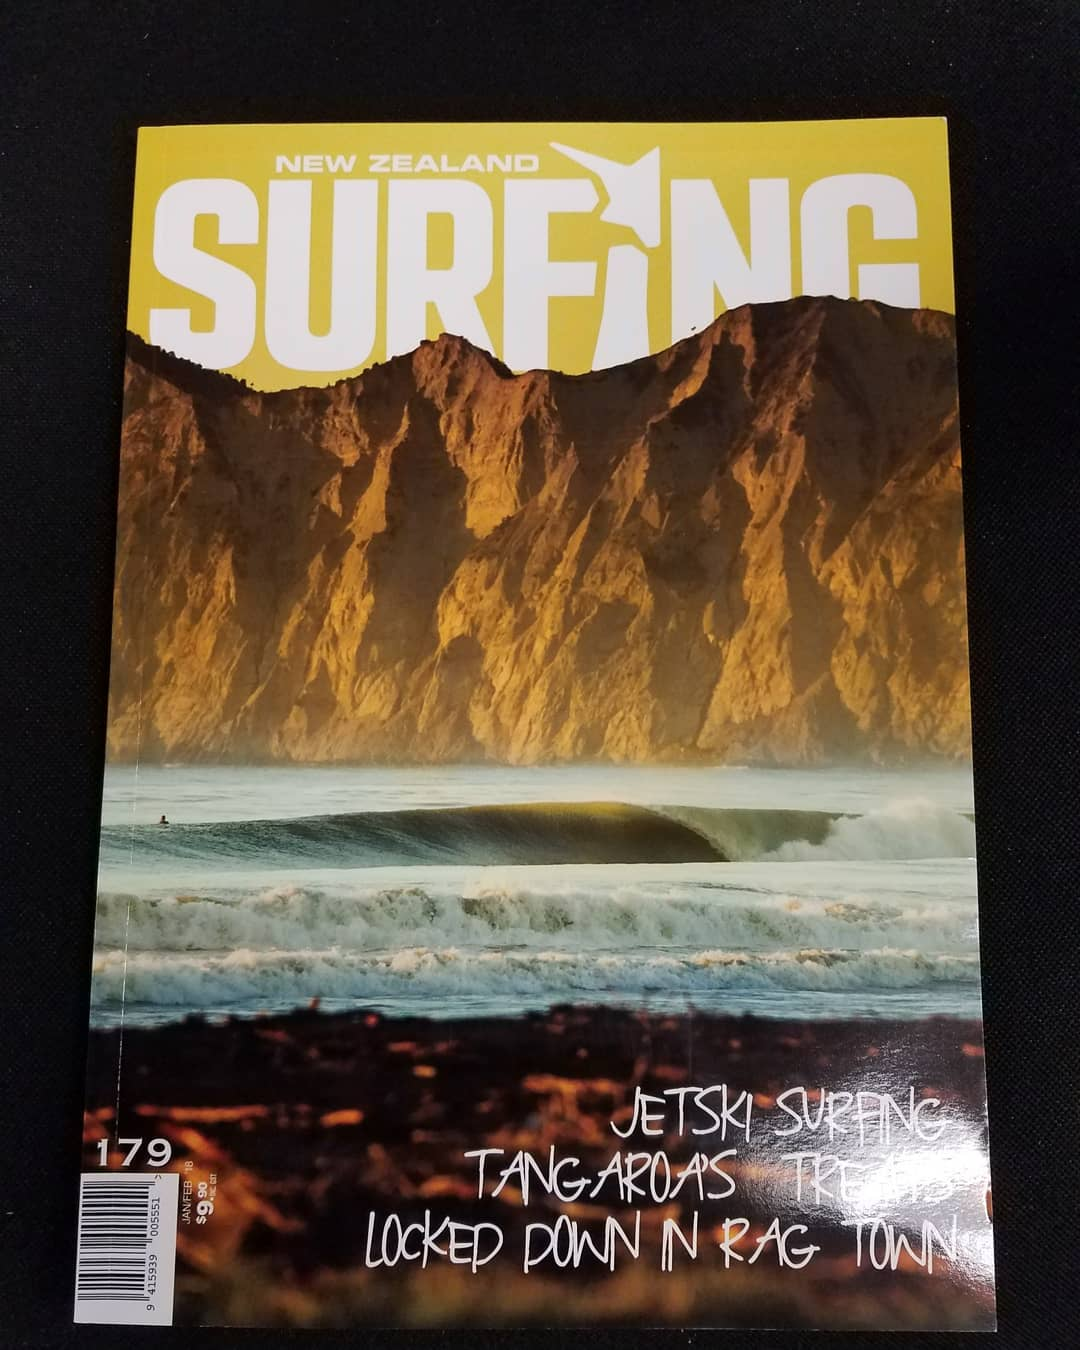 The cover of New Zealand Surfing Magazine (Jan/Feb 2018)